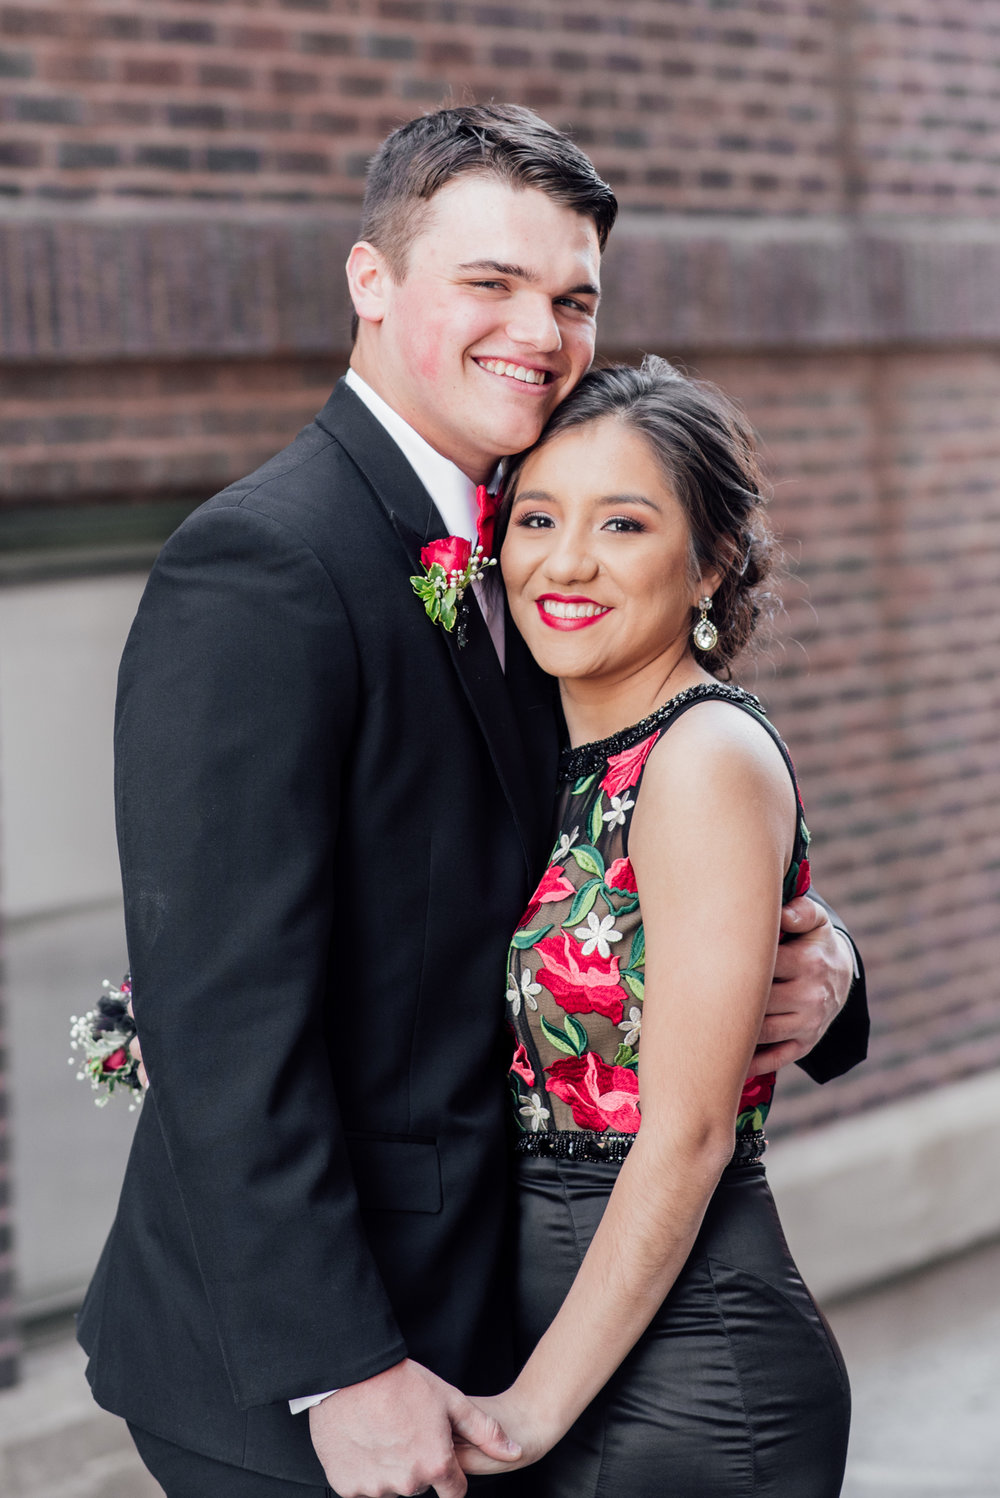 evelyn and quinn muscatine prom pictures-8.jpg